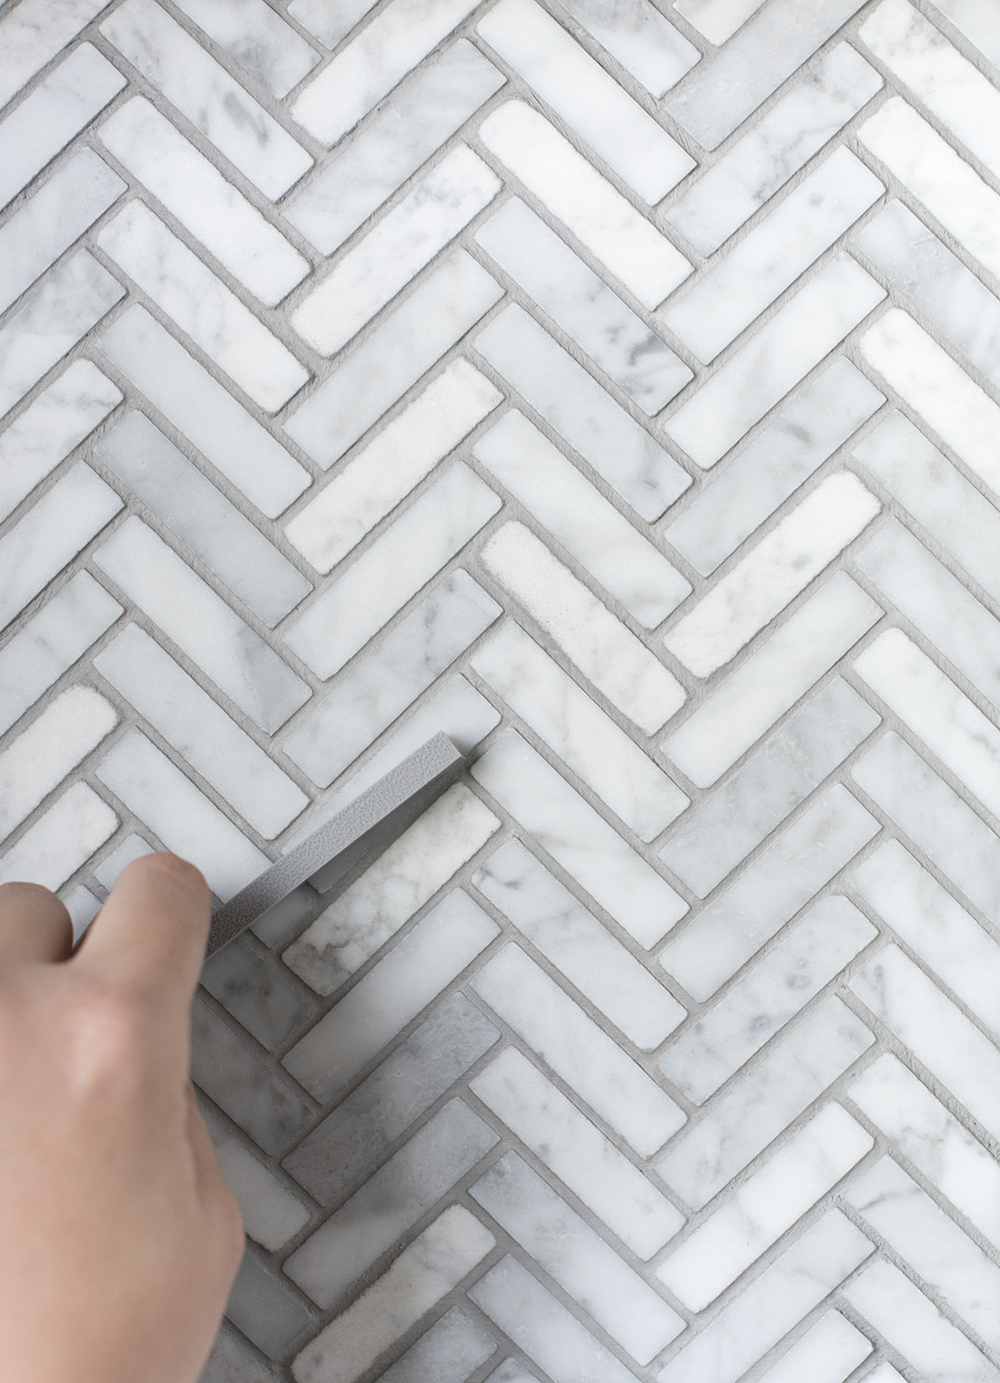 How We Choose : Grout for Tile - roomfortuesday.com